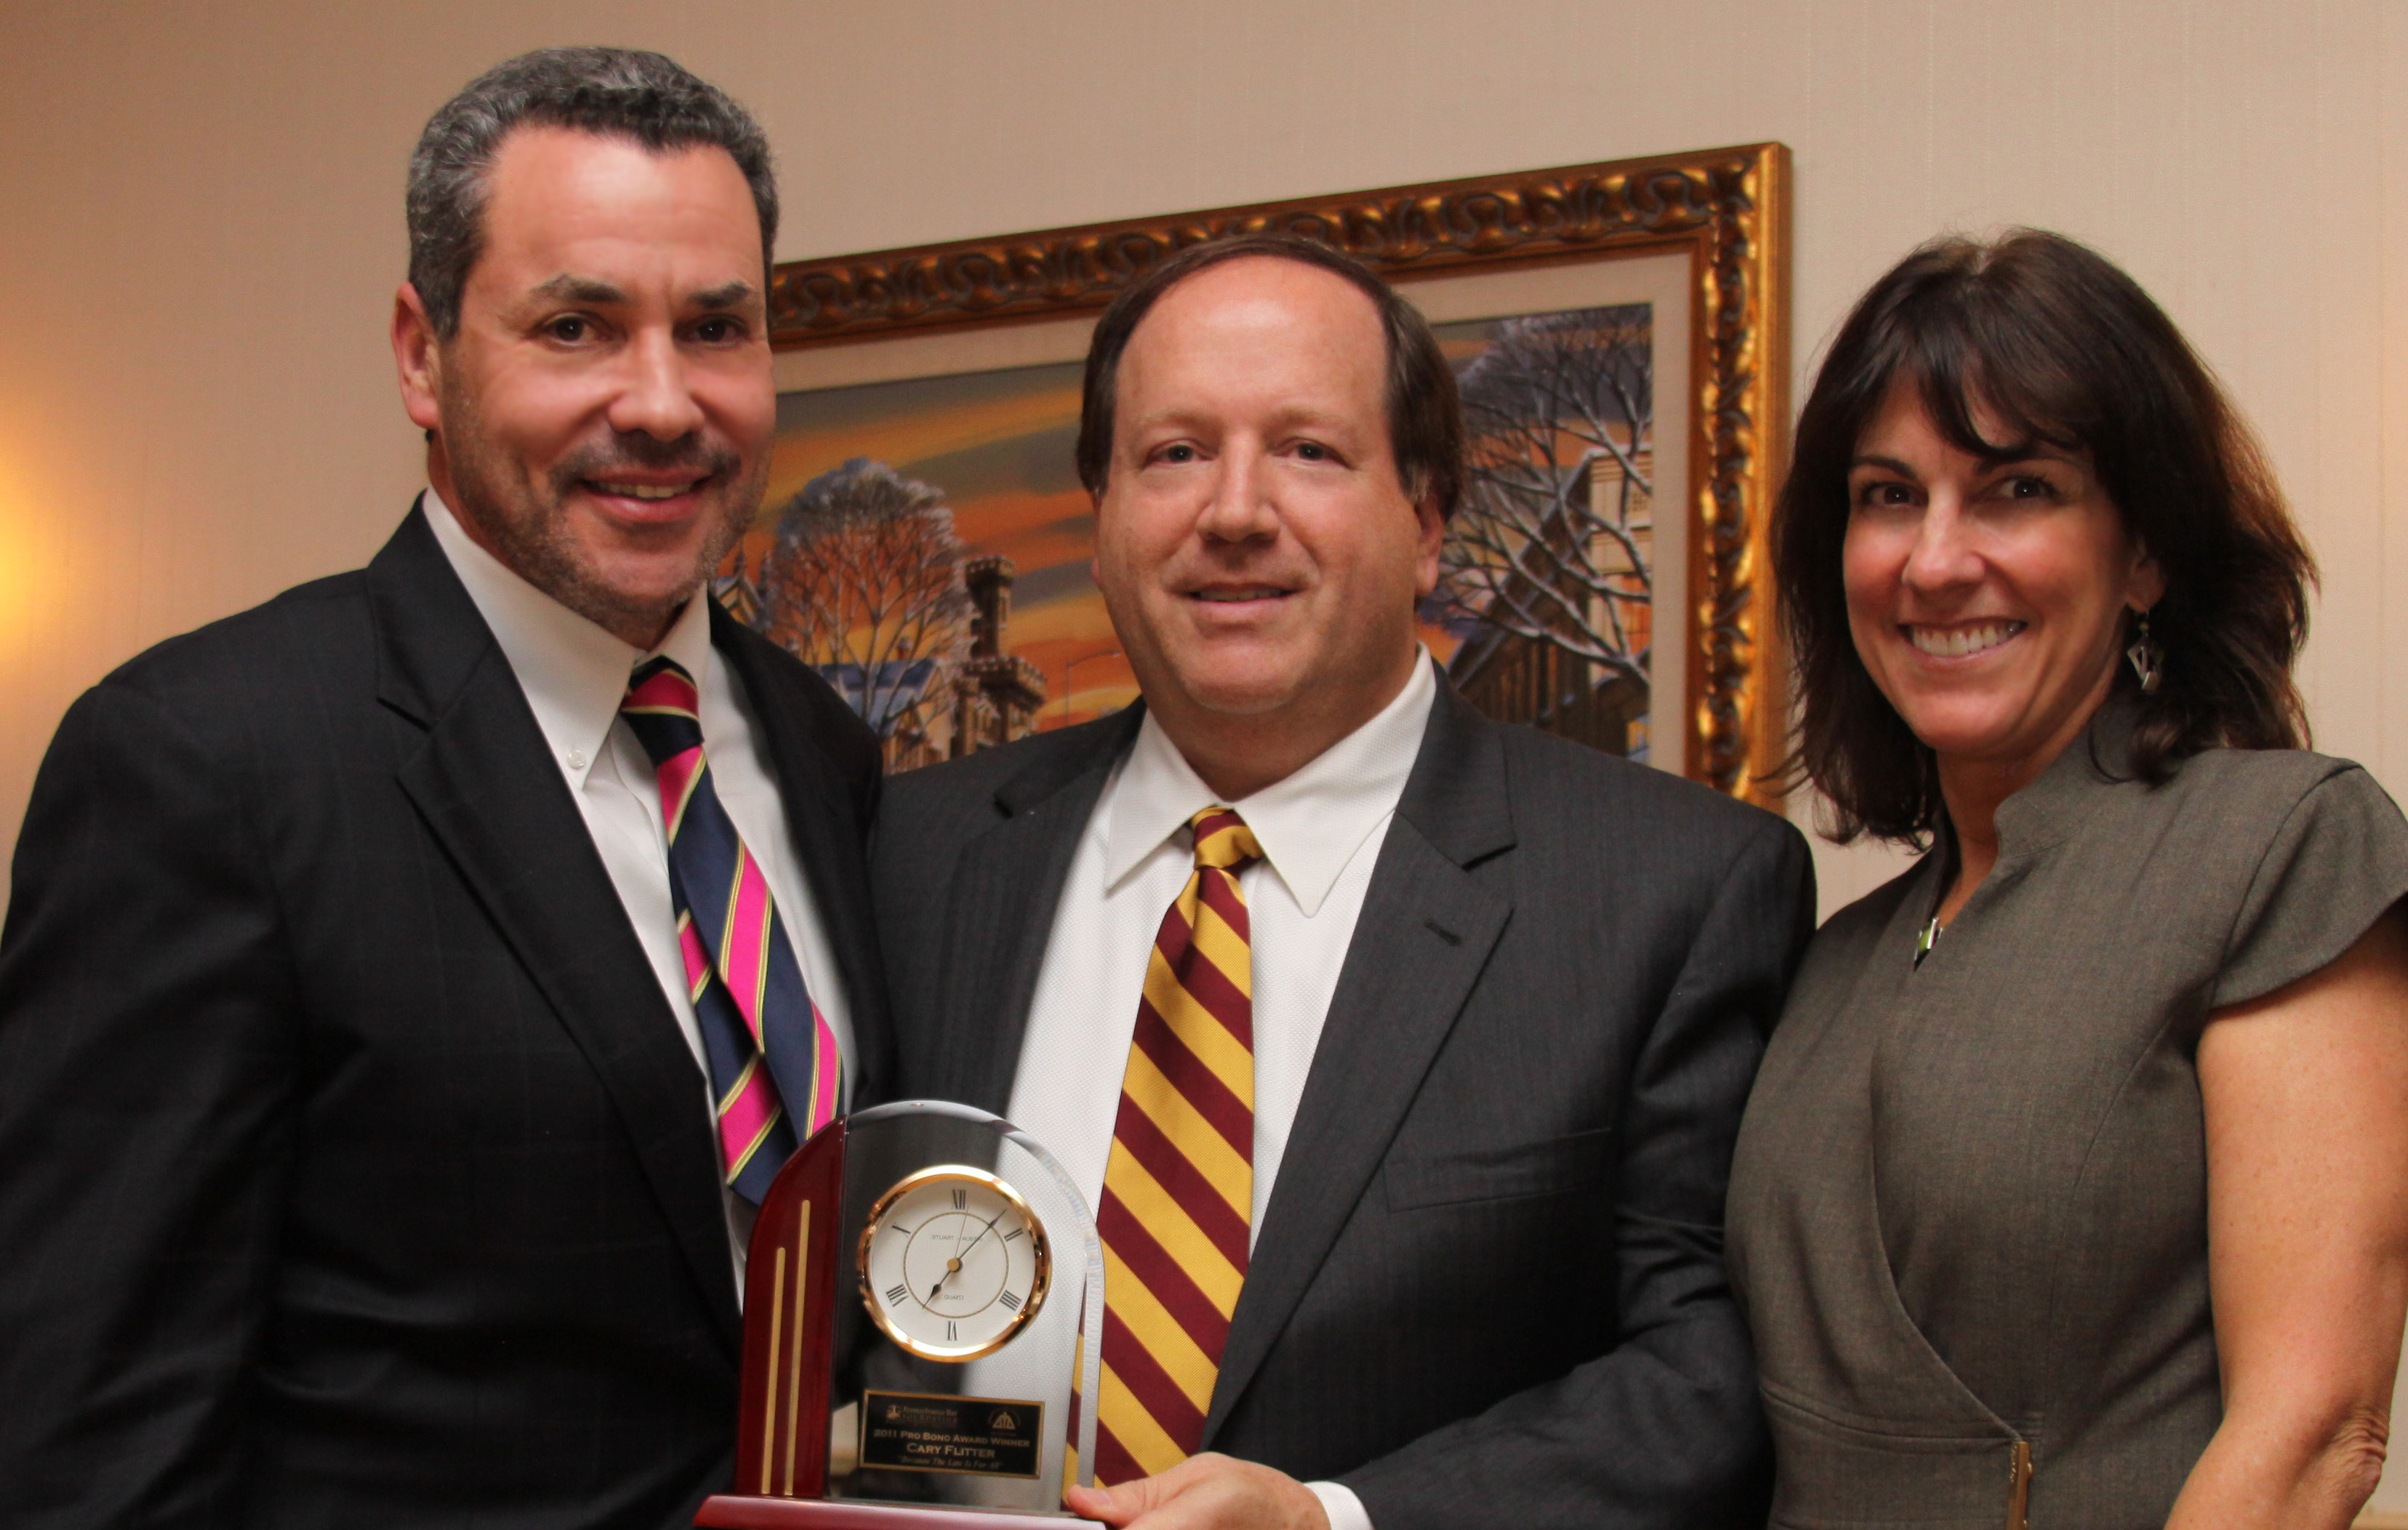 Cary L. Flitter, Esq. with Thomas G. Wilkinson, Esq. PBA President-Elect and Hon. Carolyn T. Carluccio, MBA President